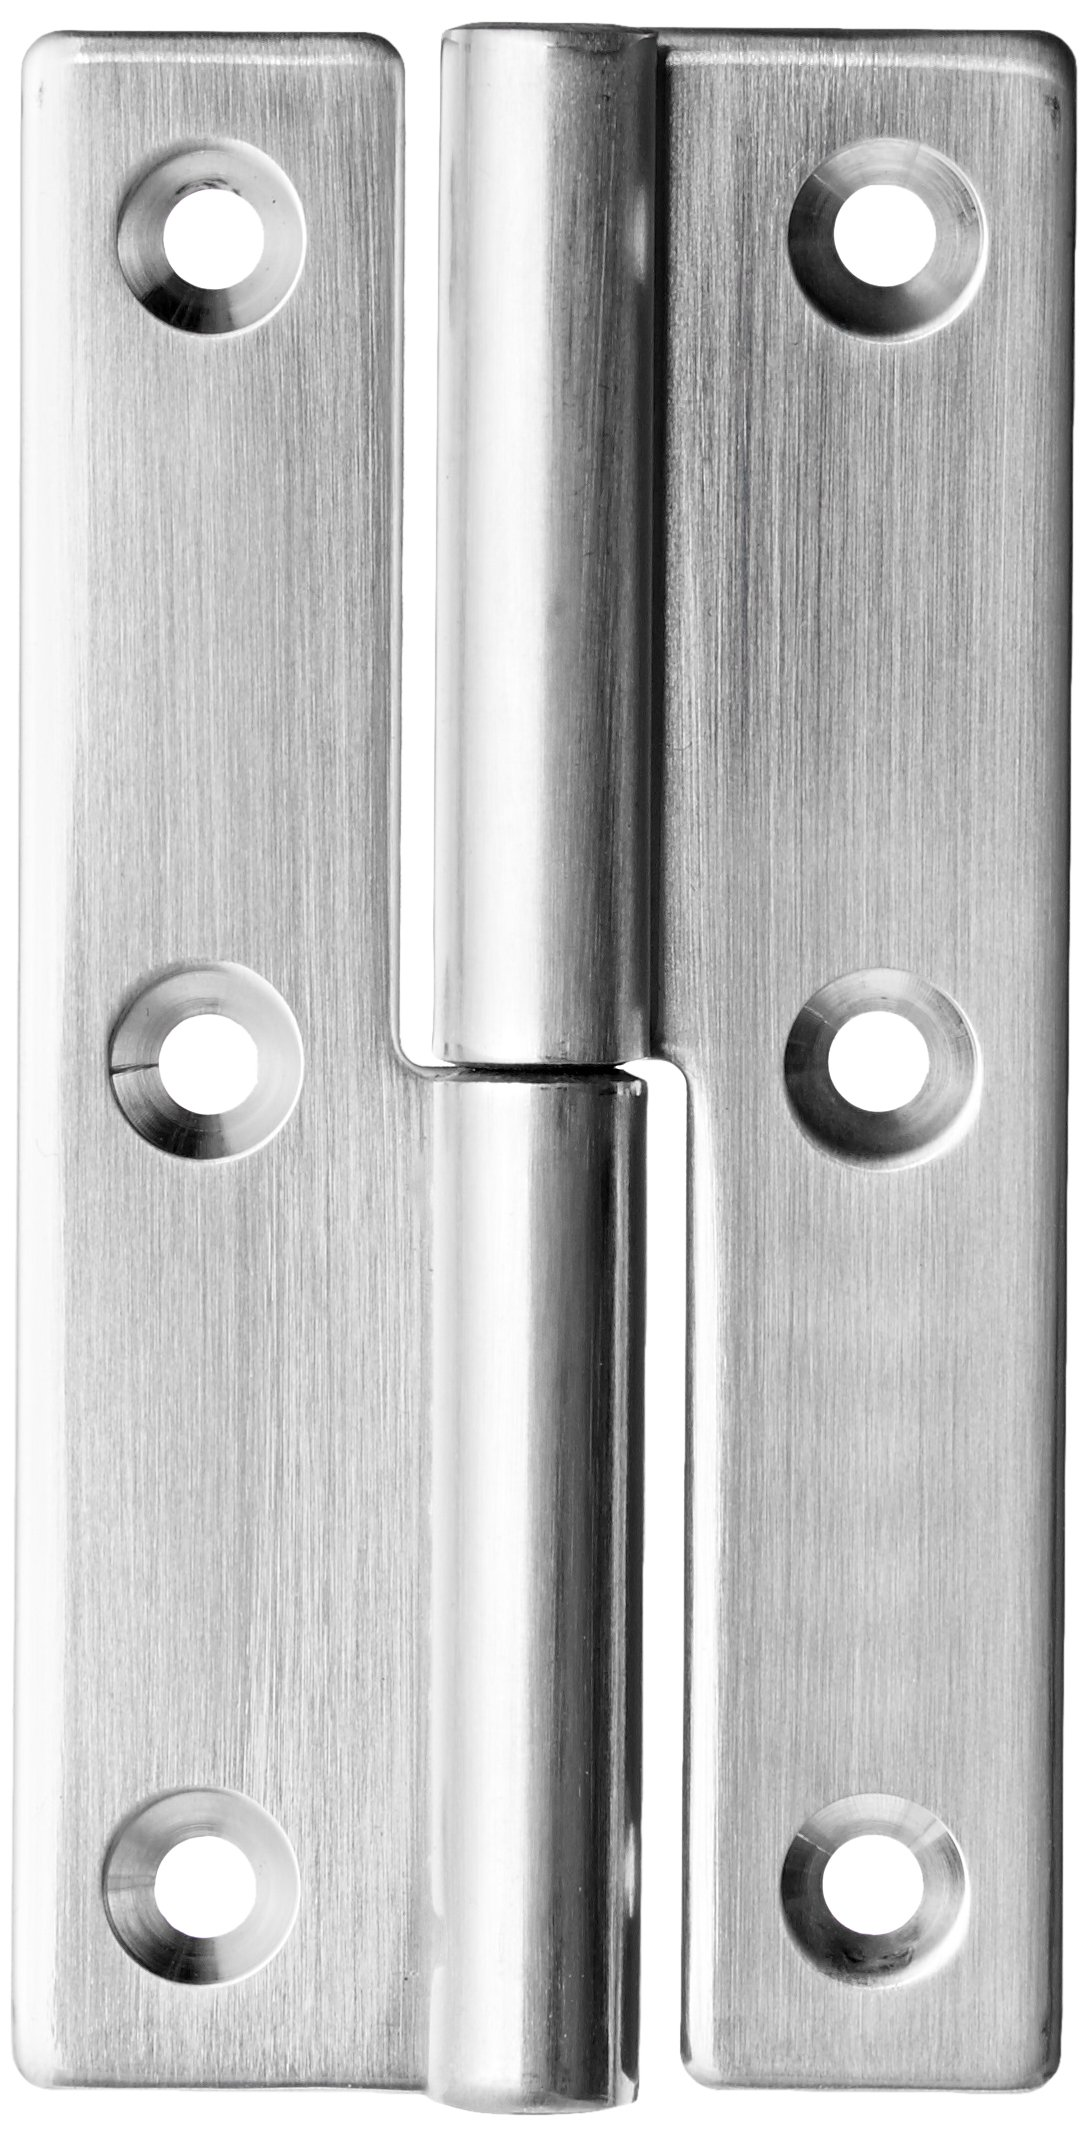 Sugatsune KN-75R/SS Lift Off Hinge, Stainless Steel 304, Polished Finish, Right Handedness, 2mm Leaf Thickness, 38mm Open Width, 8.5mm Pin Diameter